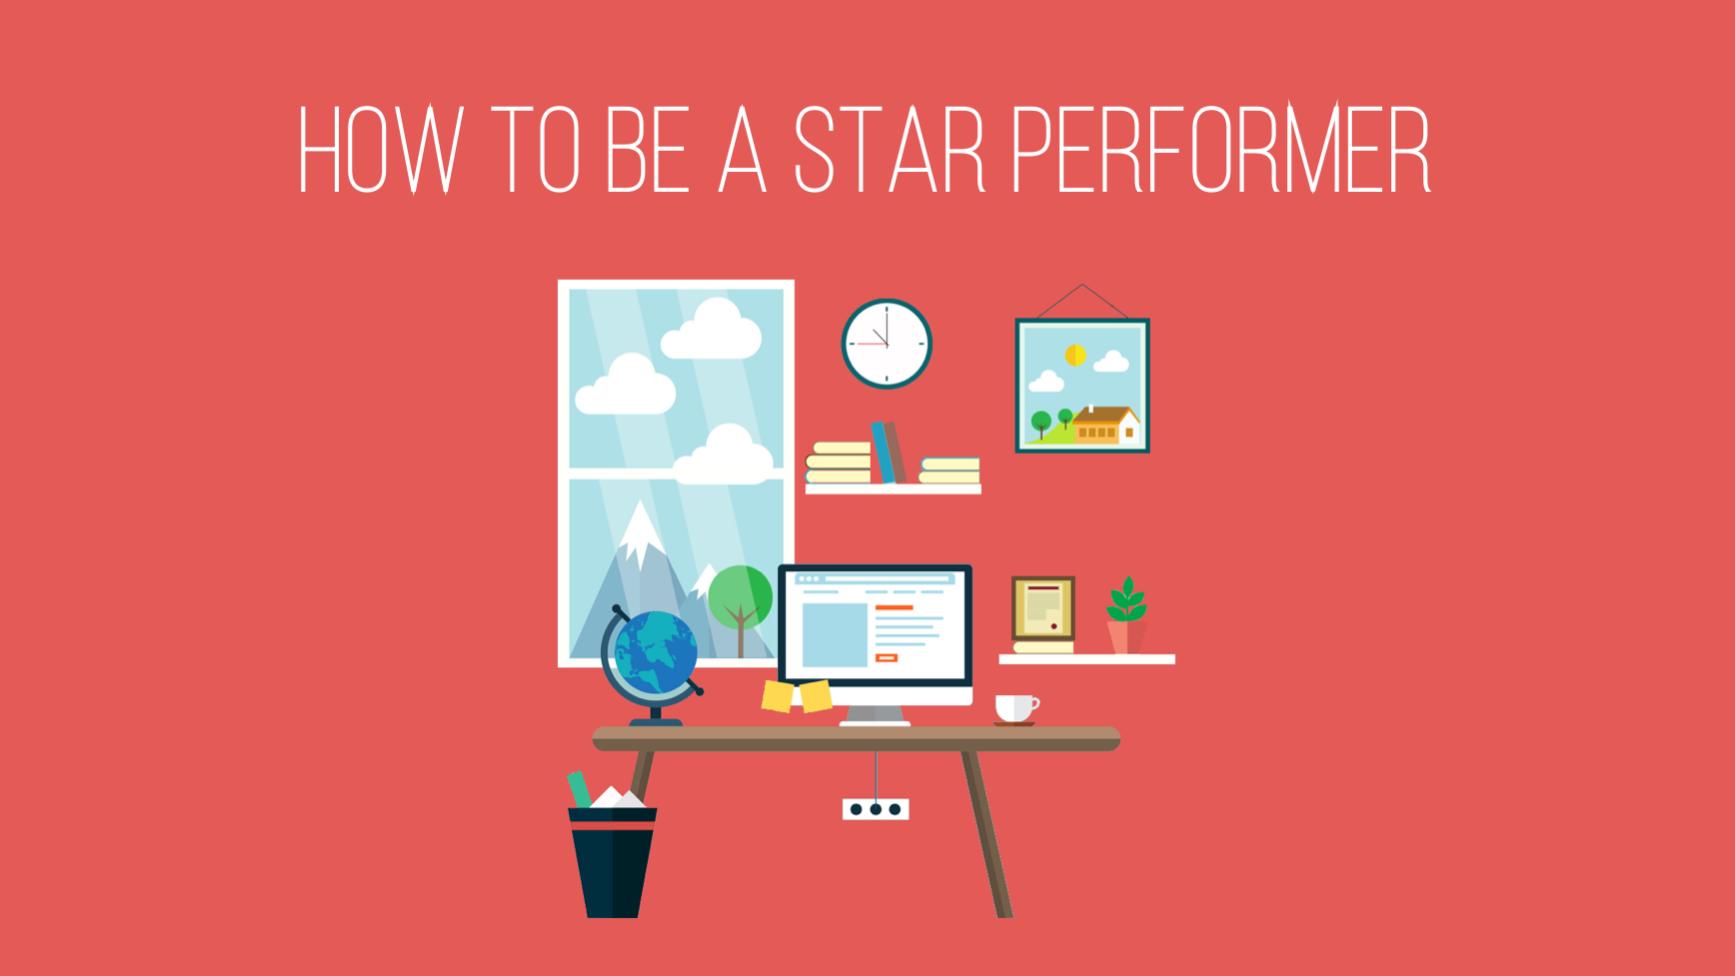 How to be a star performer at work